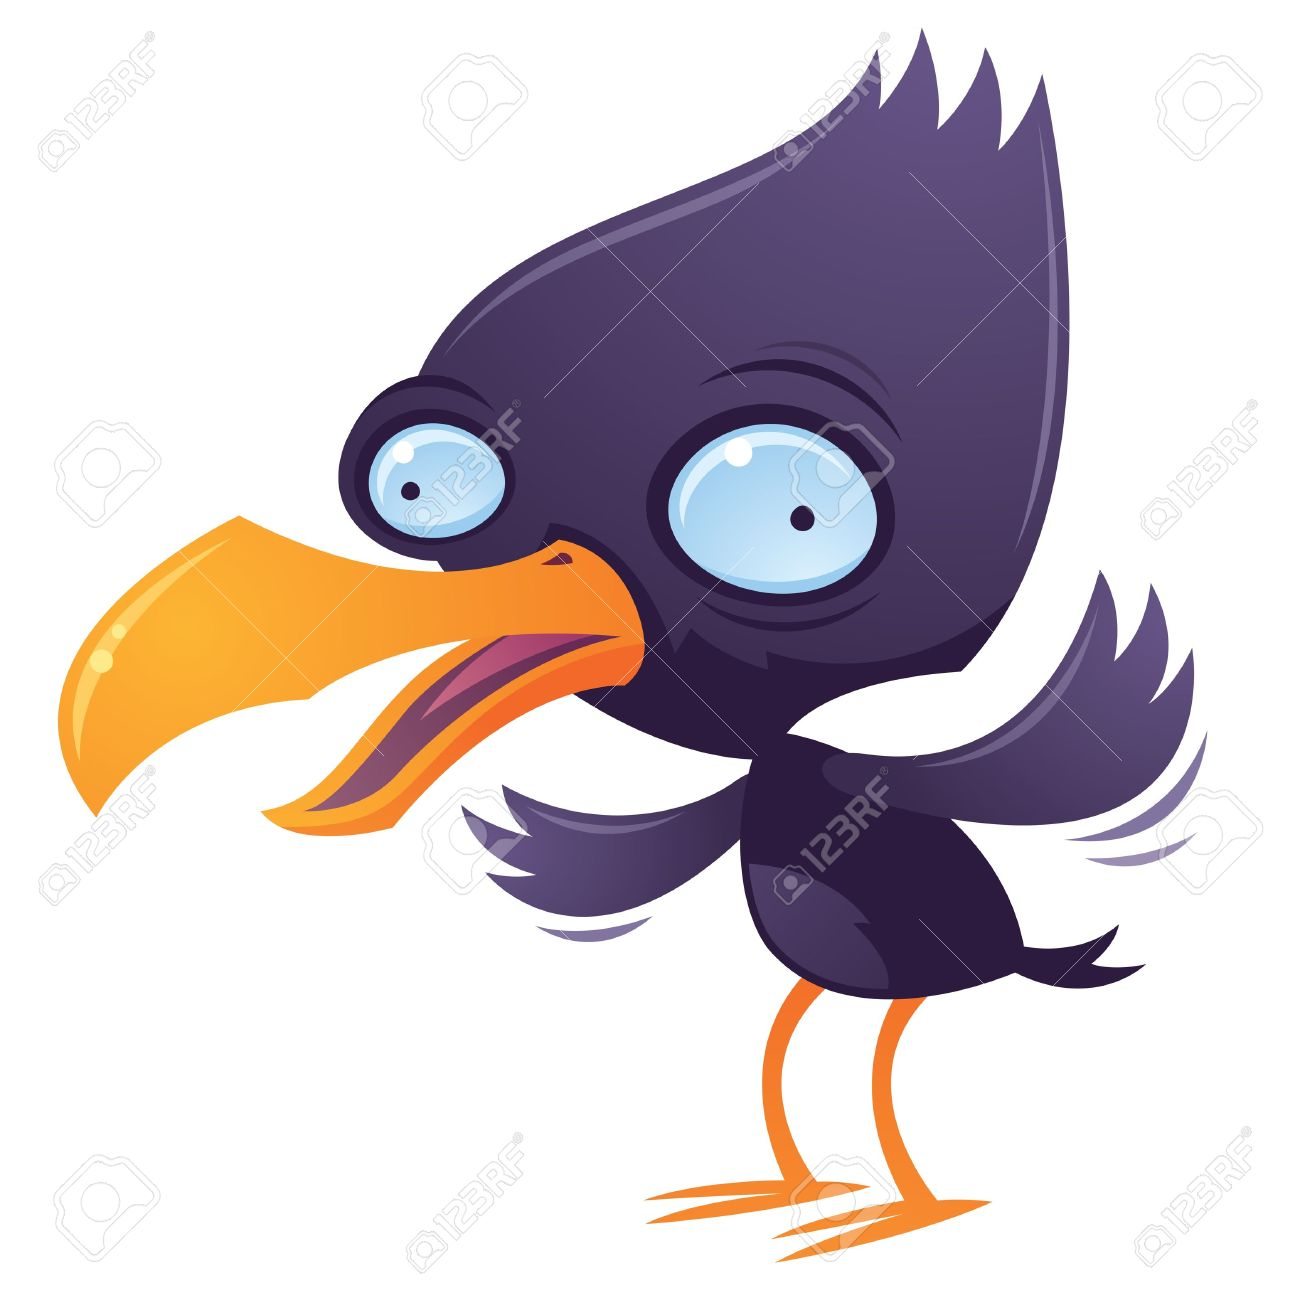 Cartoon Illustration Of A Wacky Squawking Bird Flapping His Wings.